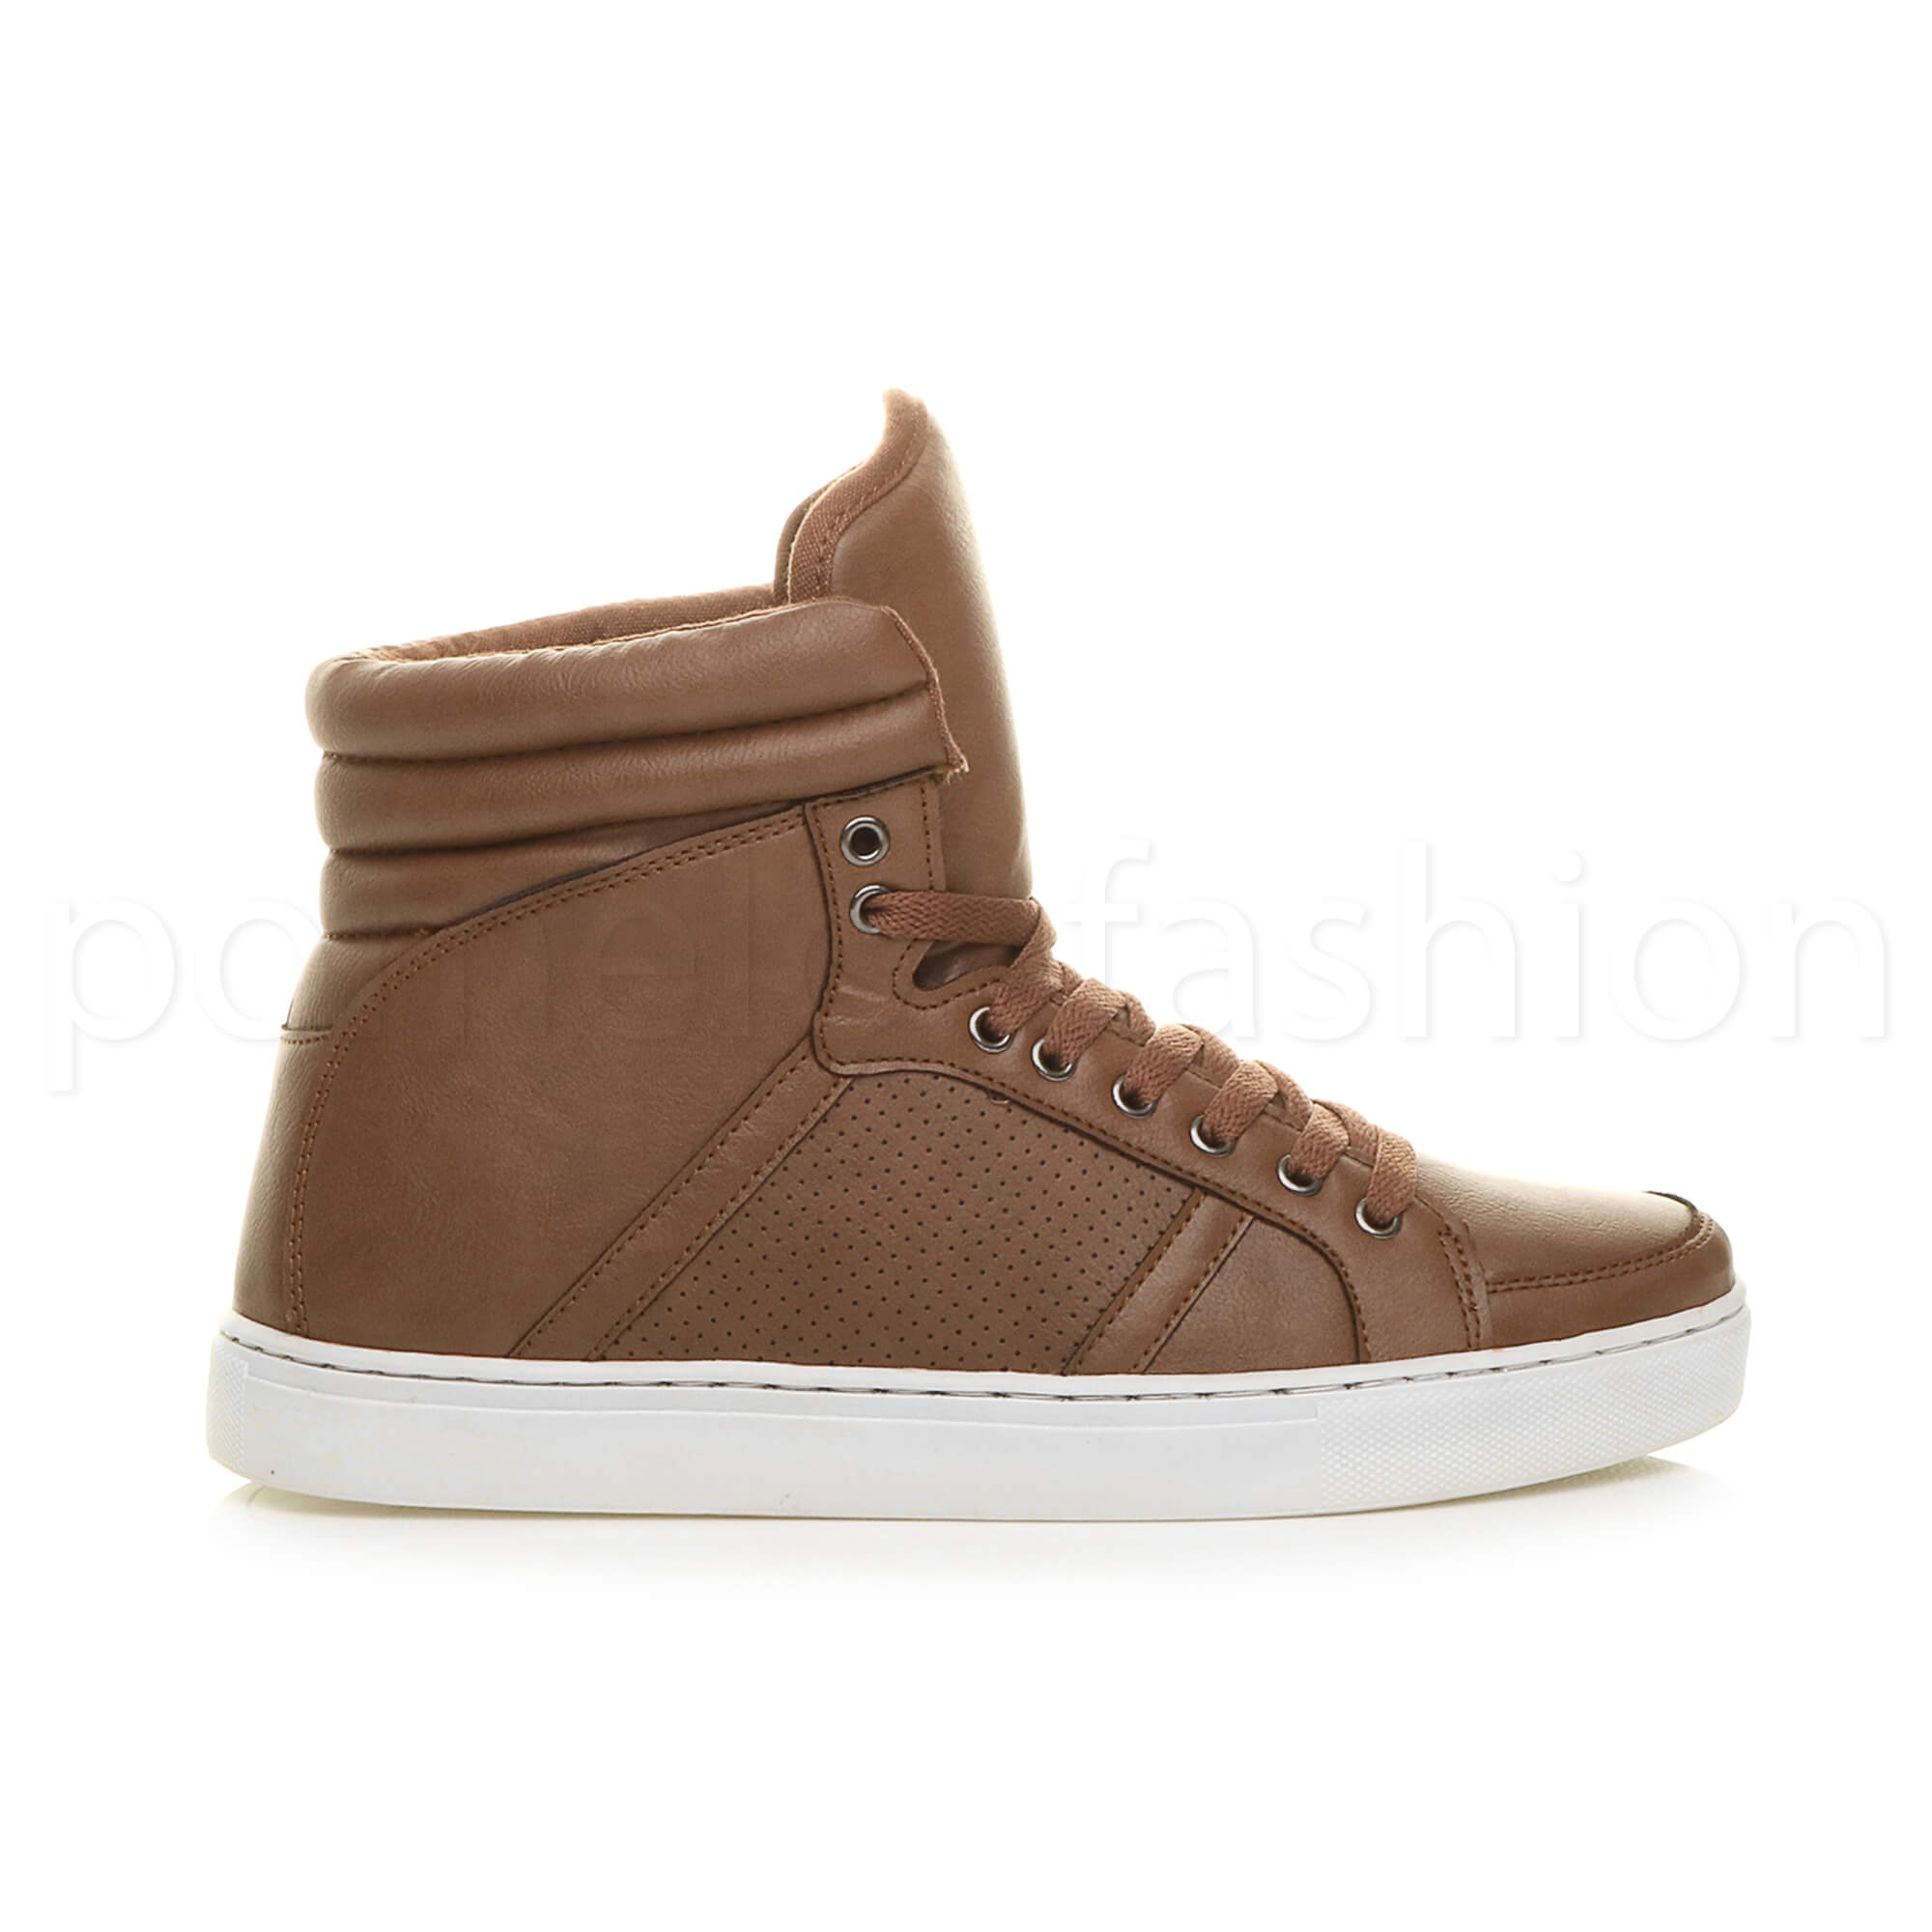 MENS CASUAL FLAT LACE UP HI HIGH TOP ANKLE TRAINER BOOTS ...